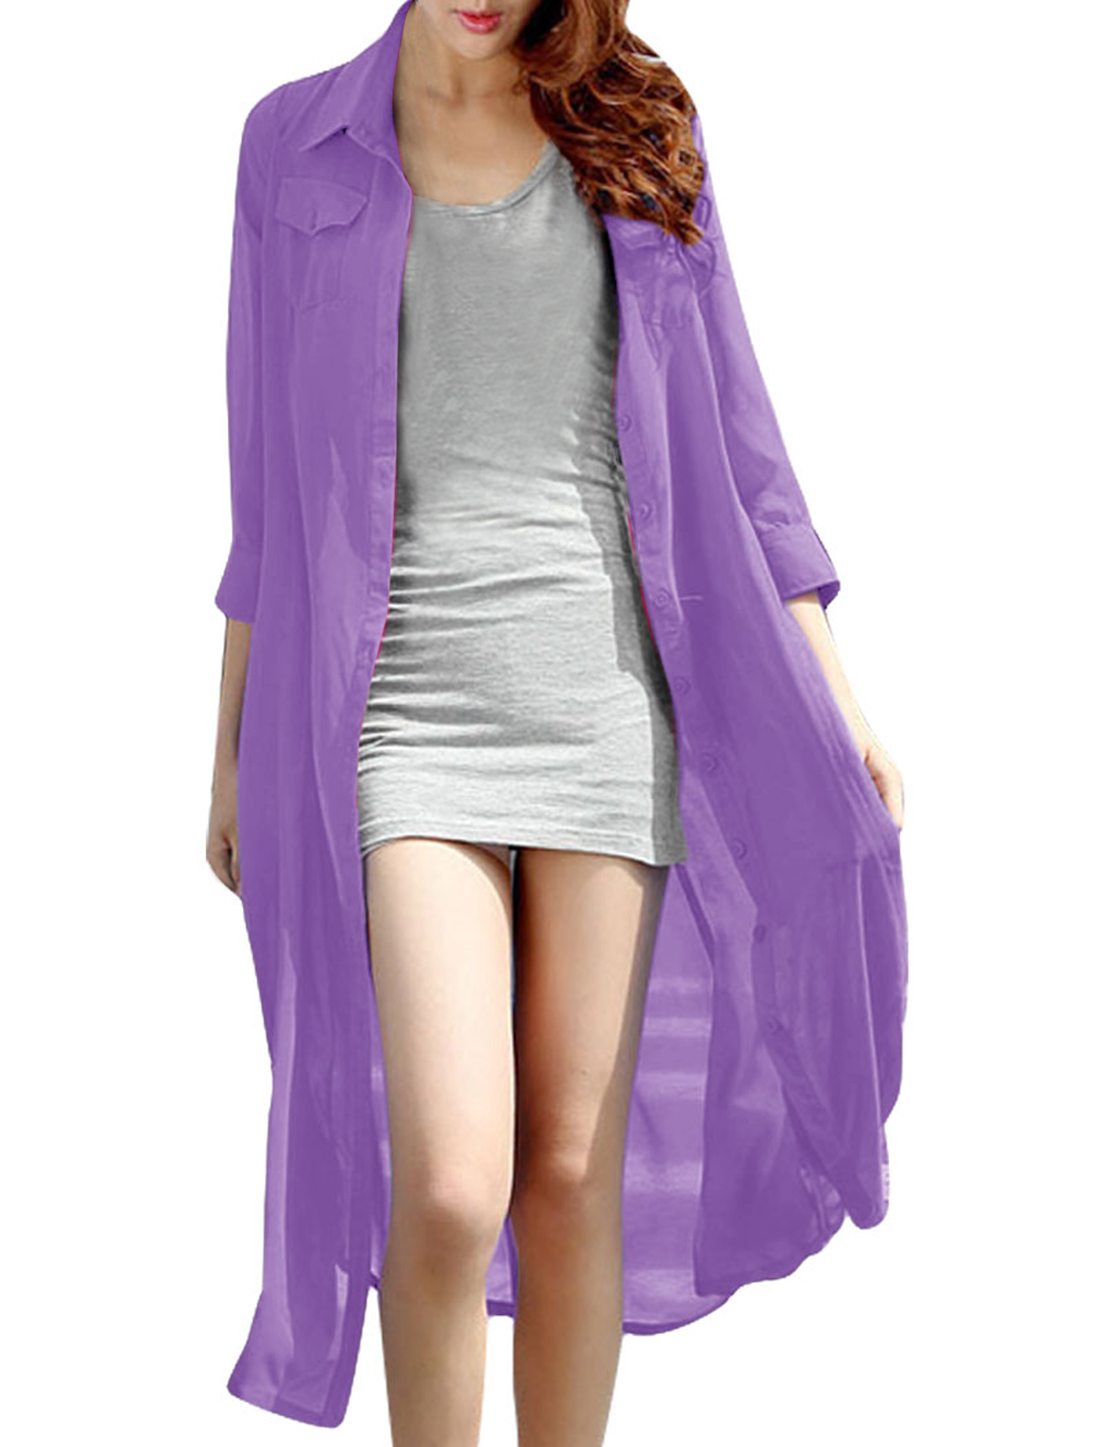 Women Chic Single-Breasted Front Lavender Color Button Down Shirt Dress XS